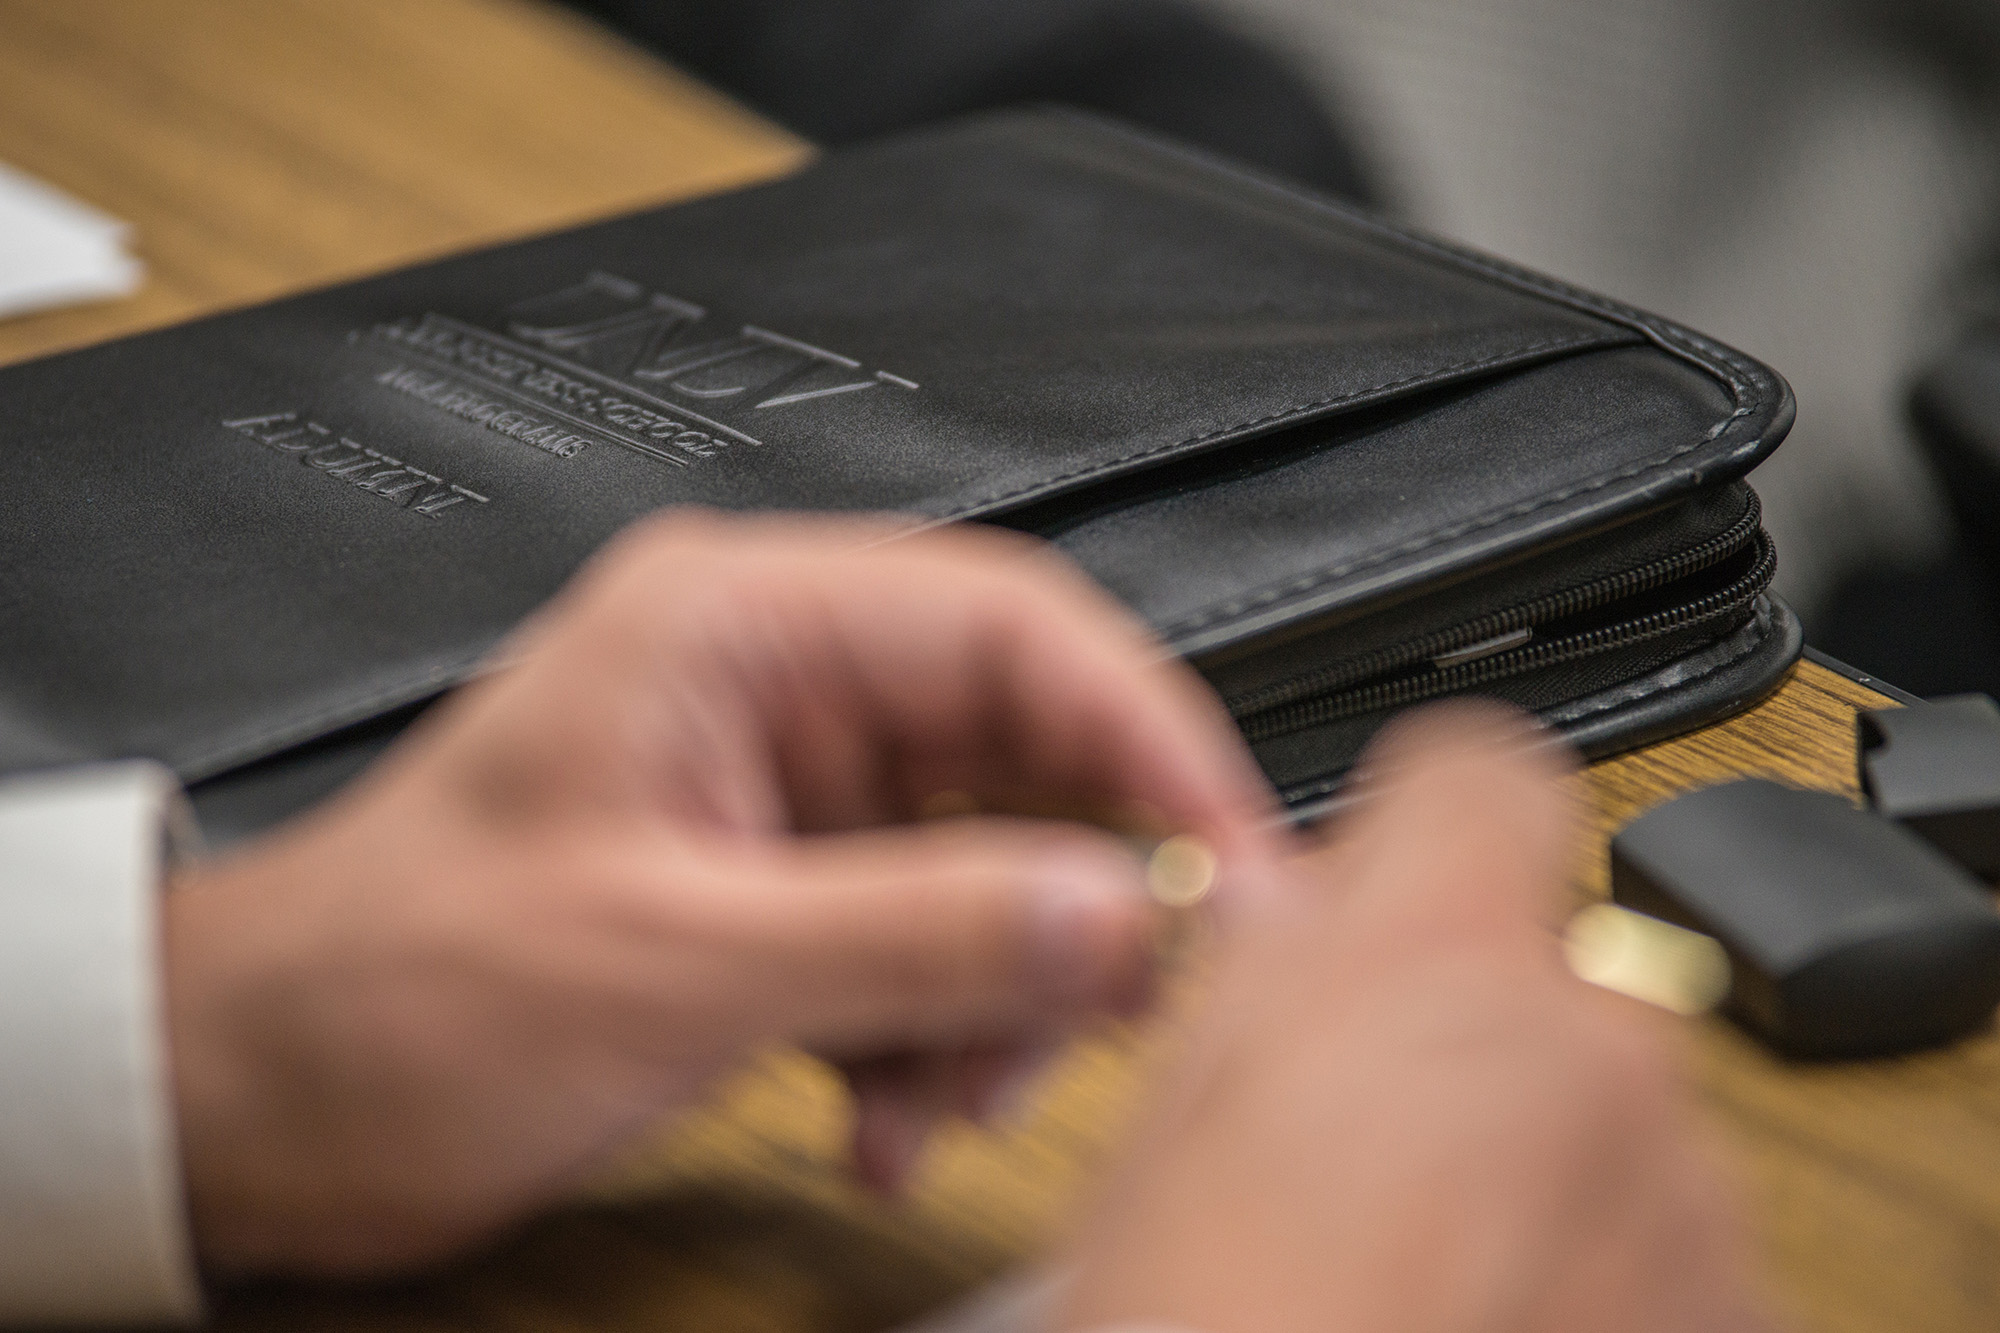 A closeup shot of a man's hands and a black briefcase